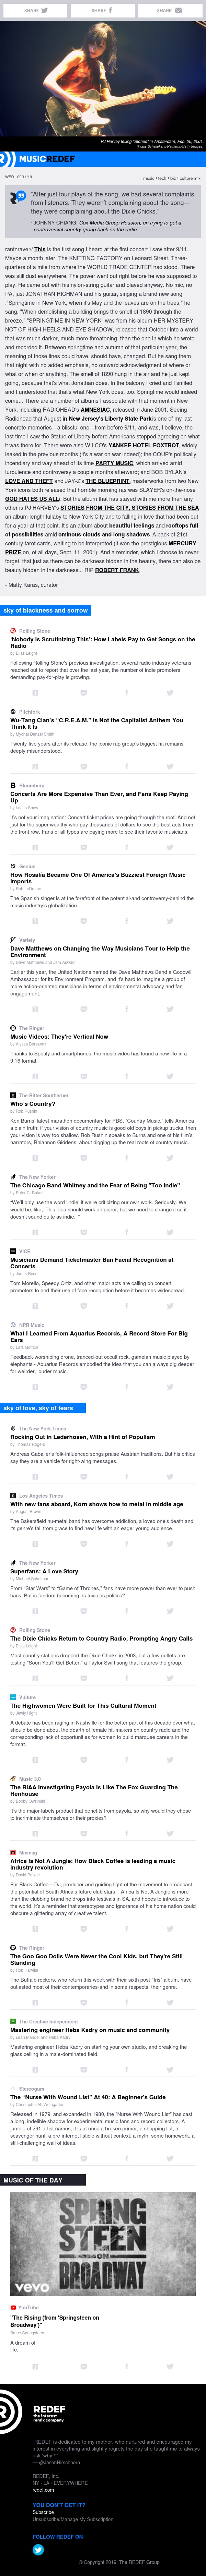 jason hirschhorn's @MusicREDEF: 09/11/2019 - Springtime in New York, Payola Persists, Wu-Tang Clan, Rosalía, Concert Ticket Prices...